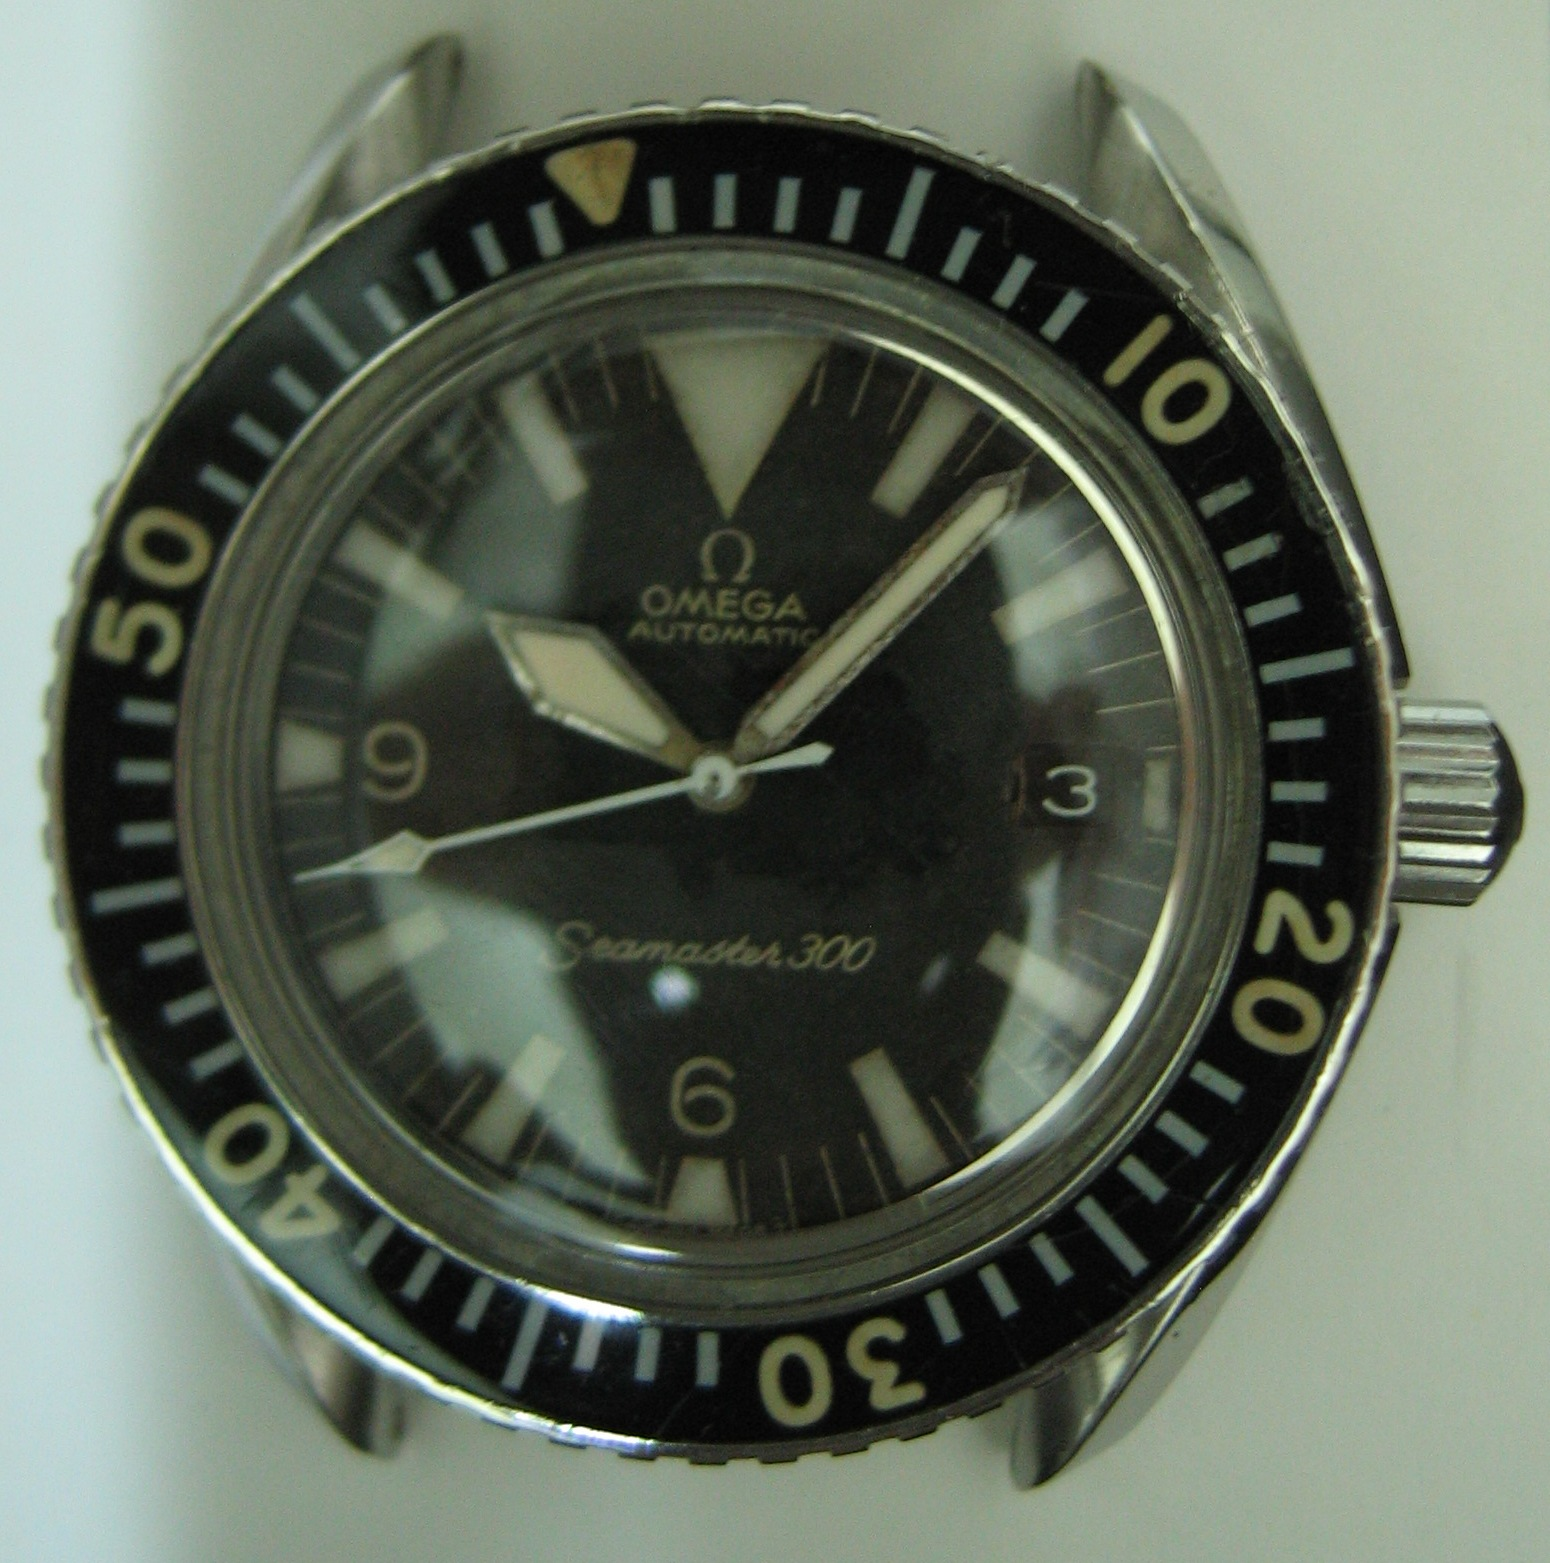 Dive into dive watch did watch omega seamaster 300 165 024 - Omega dive watch ...